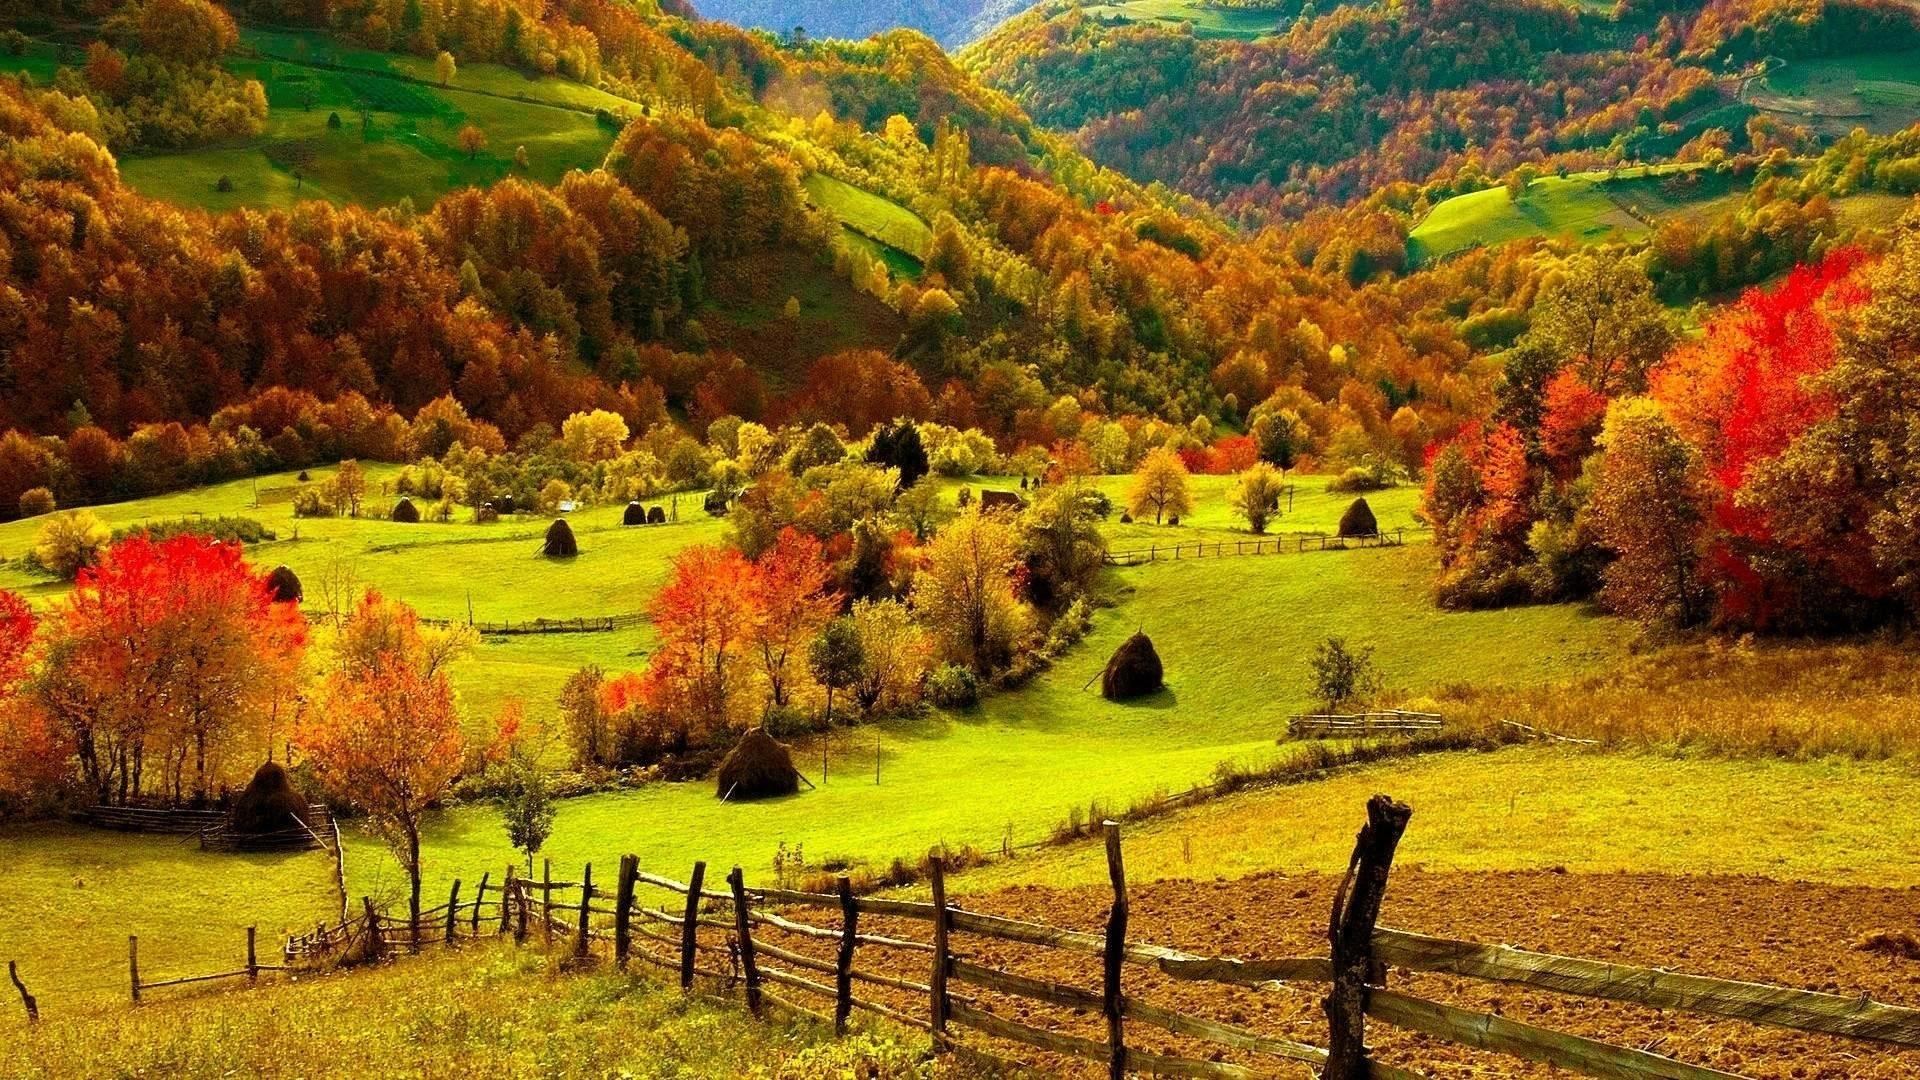 10 Most Popular Desktop Backgrounds Fall Scenery FULL HD 1080p For PC Background